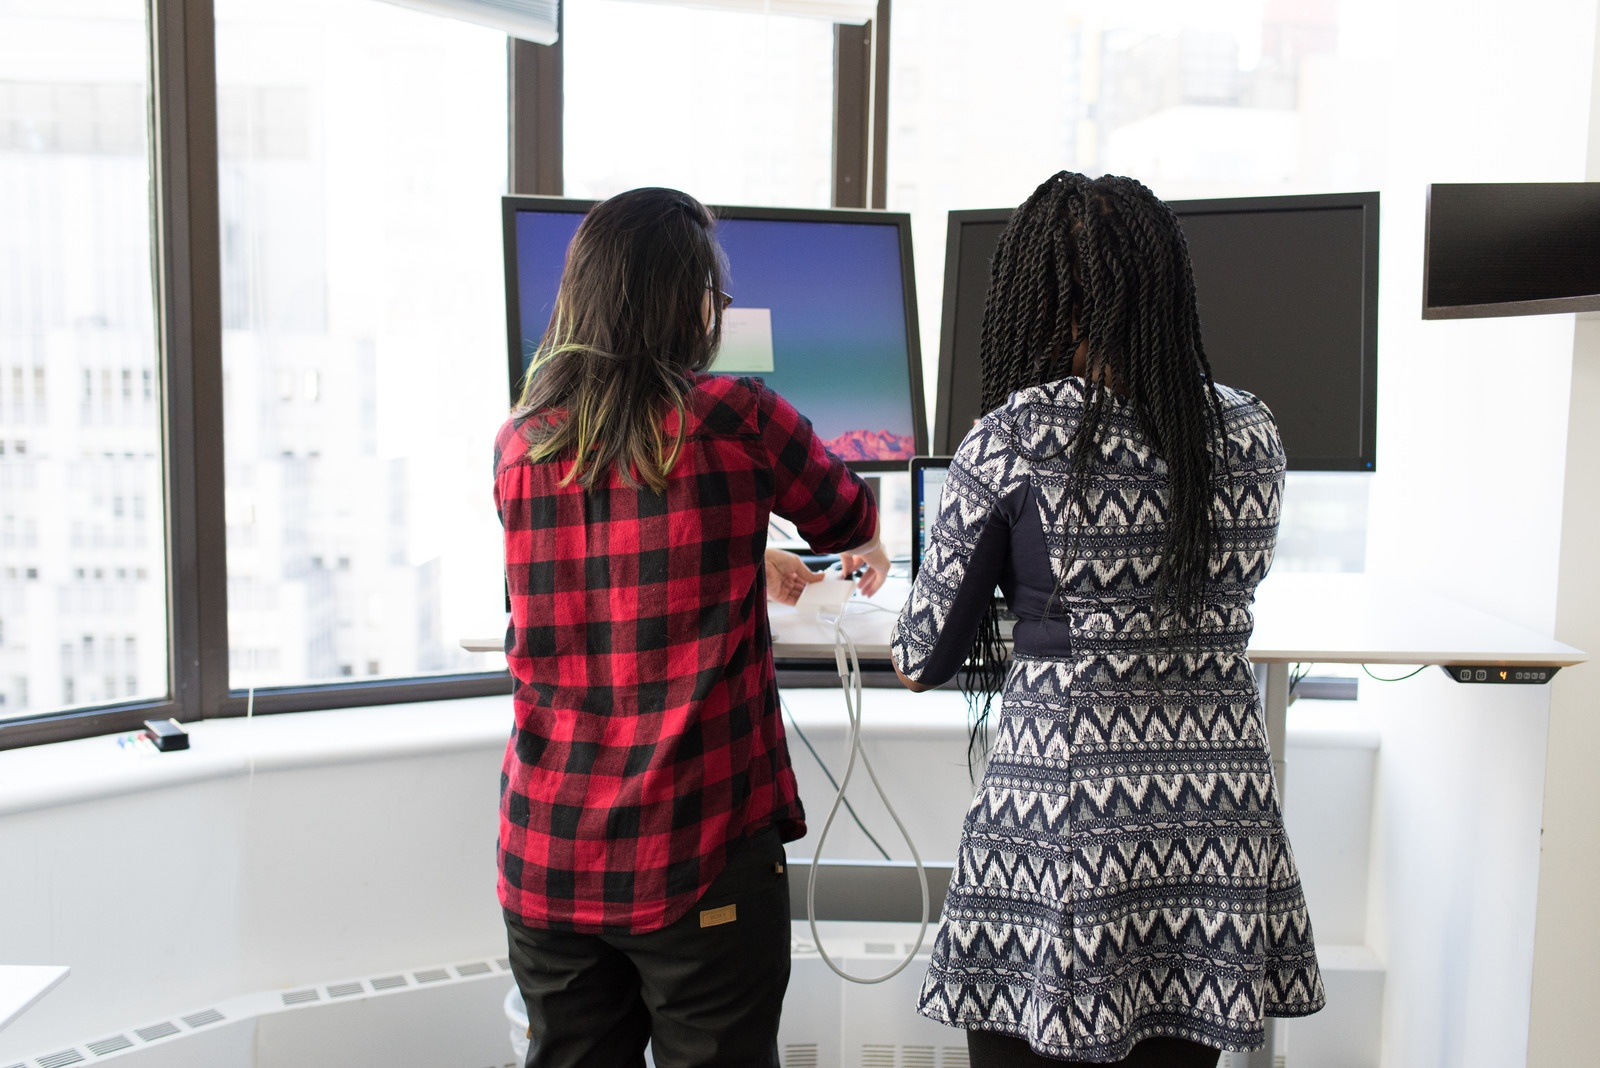 canva-two-women-standing-in-front-of-television-MADGv0r1P5I